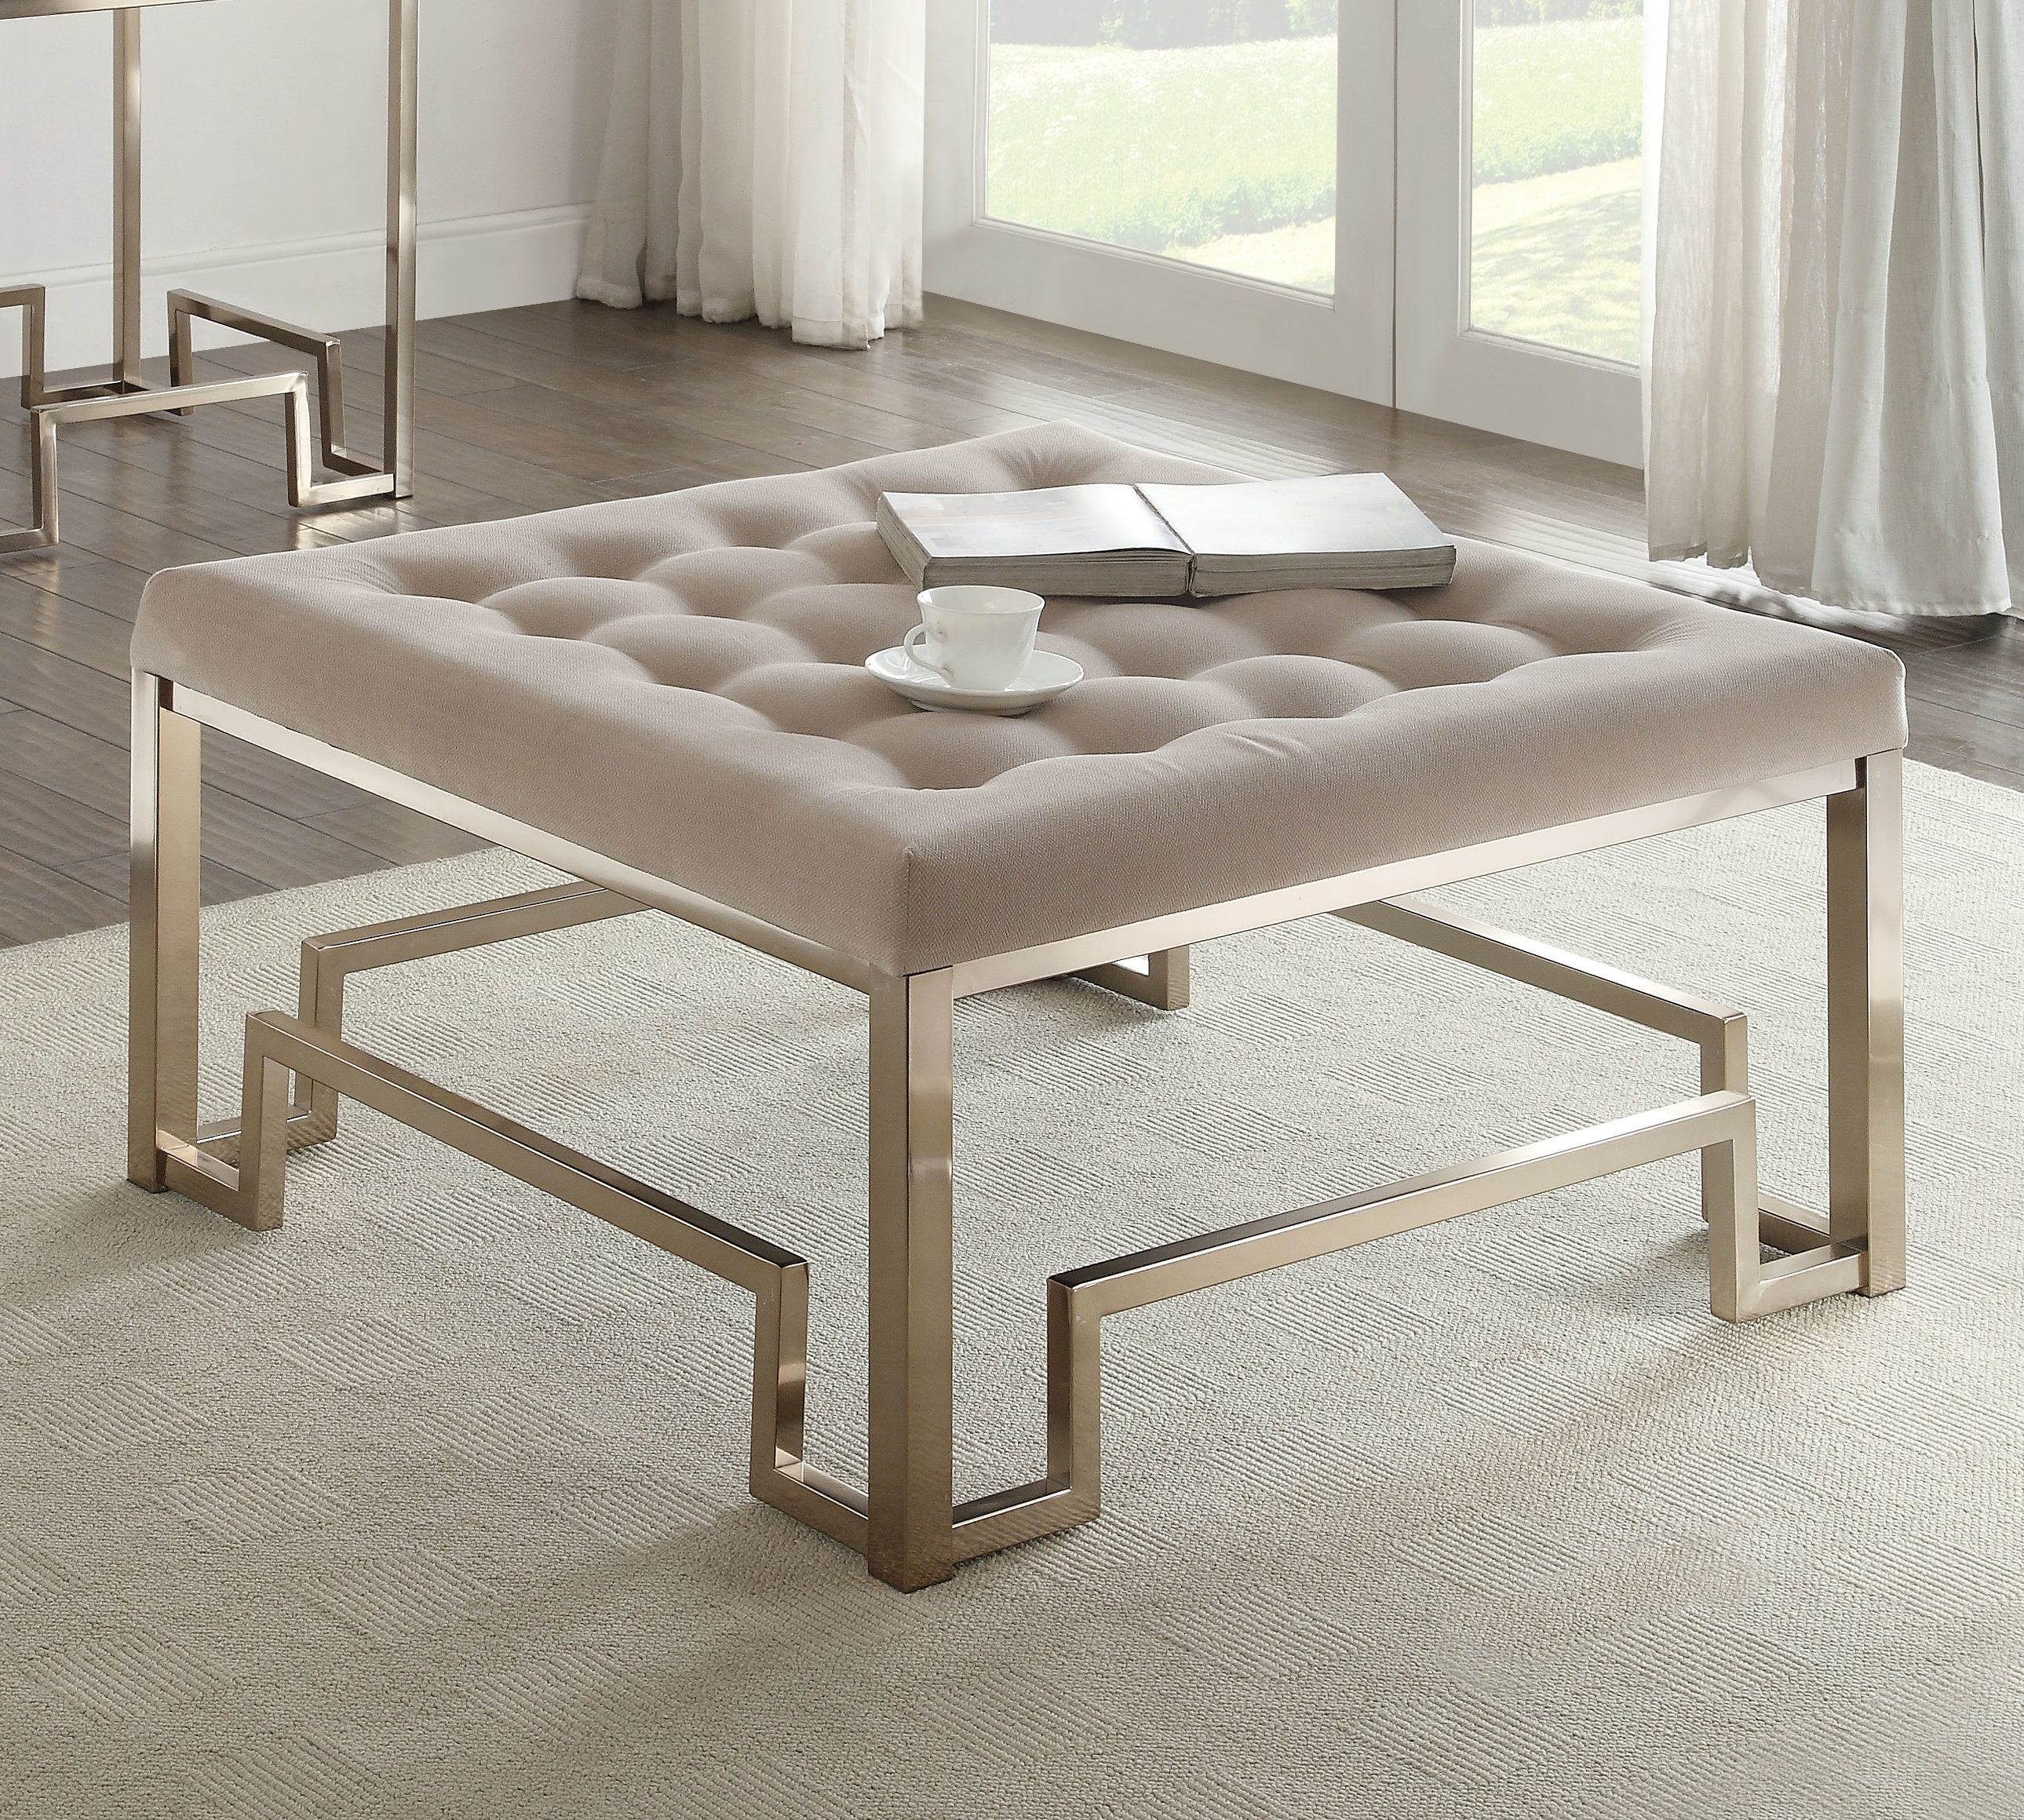 Cullompt Fabric Coffee Table with regard to dimensions 2579 X 2319